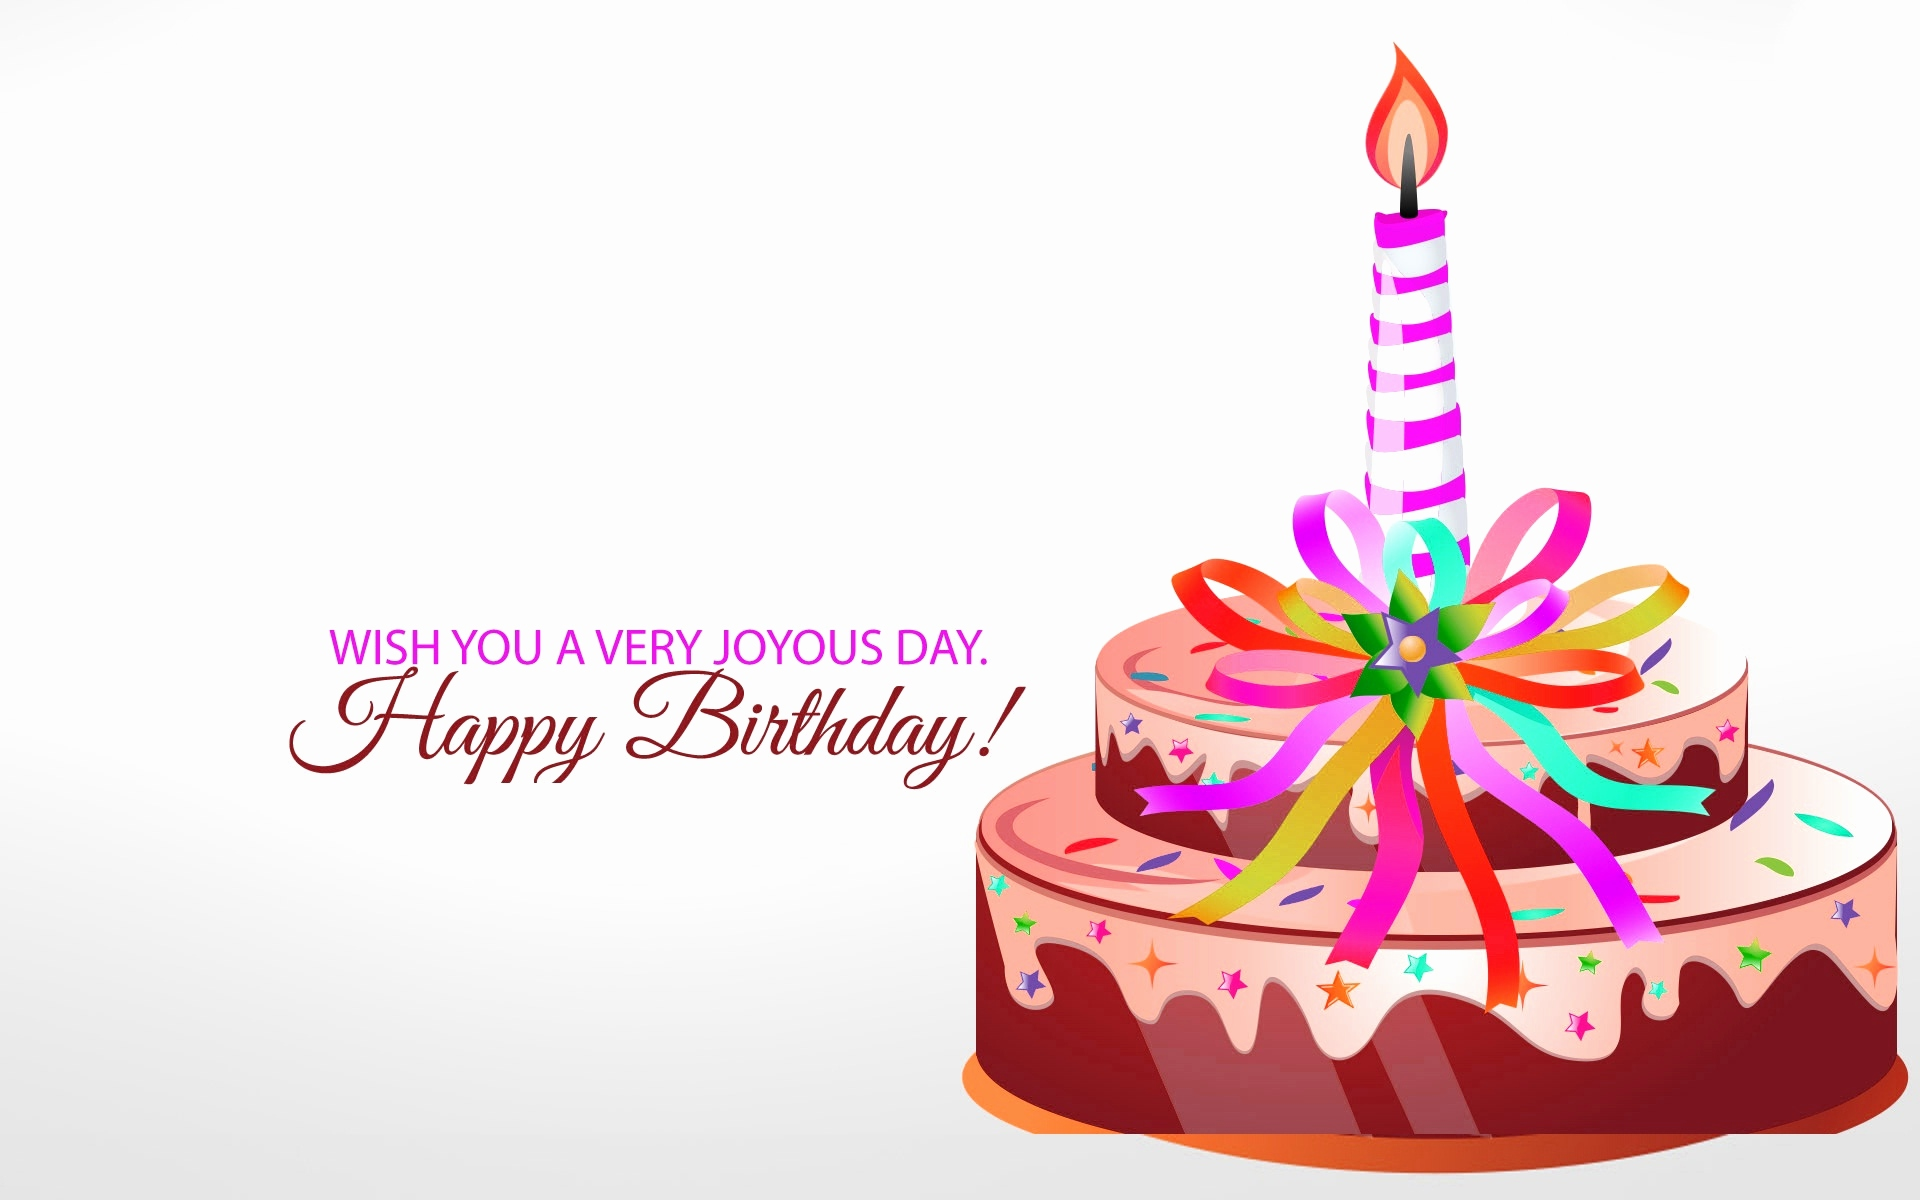 happy birthday image wishes hd ; twin-sister-birthday-cards-awesome-happy-birthday-wishes-wallpaper-s-hd-of-twin-sister-birthday-cards